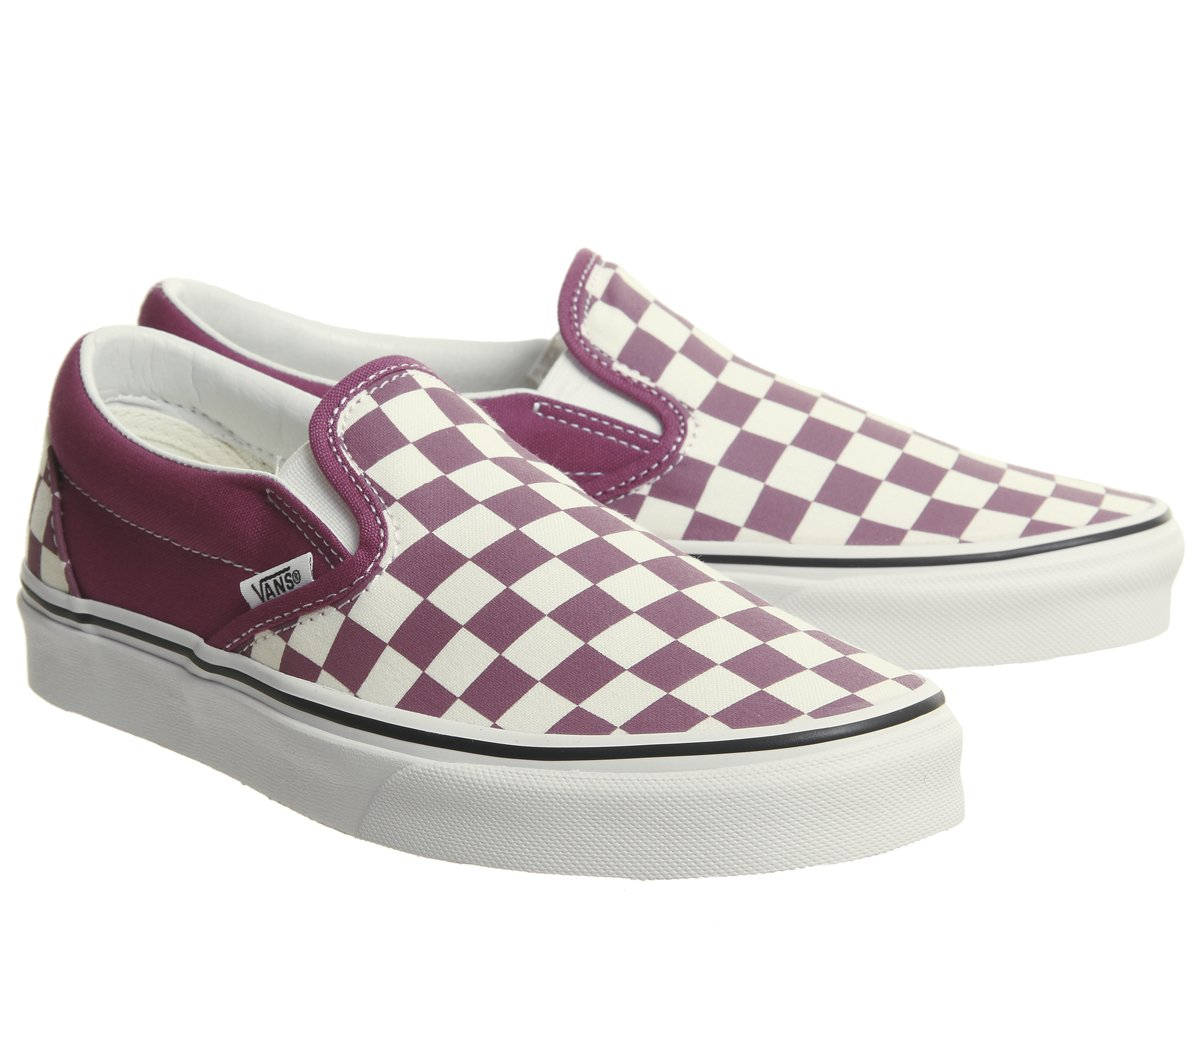 Vans Unisex Classic (Checkerboard) Slip-On Skate Shoe B078Y7NXRL 8 White D(M) US|Dry Rose / White 8 f573f5